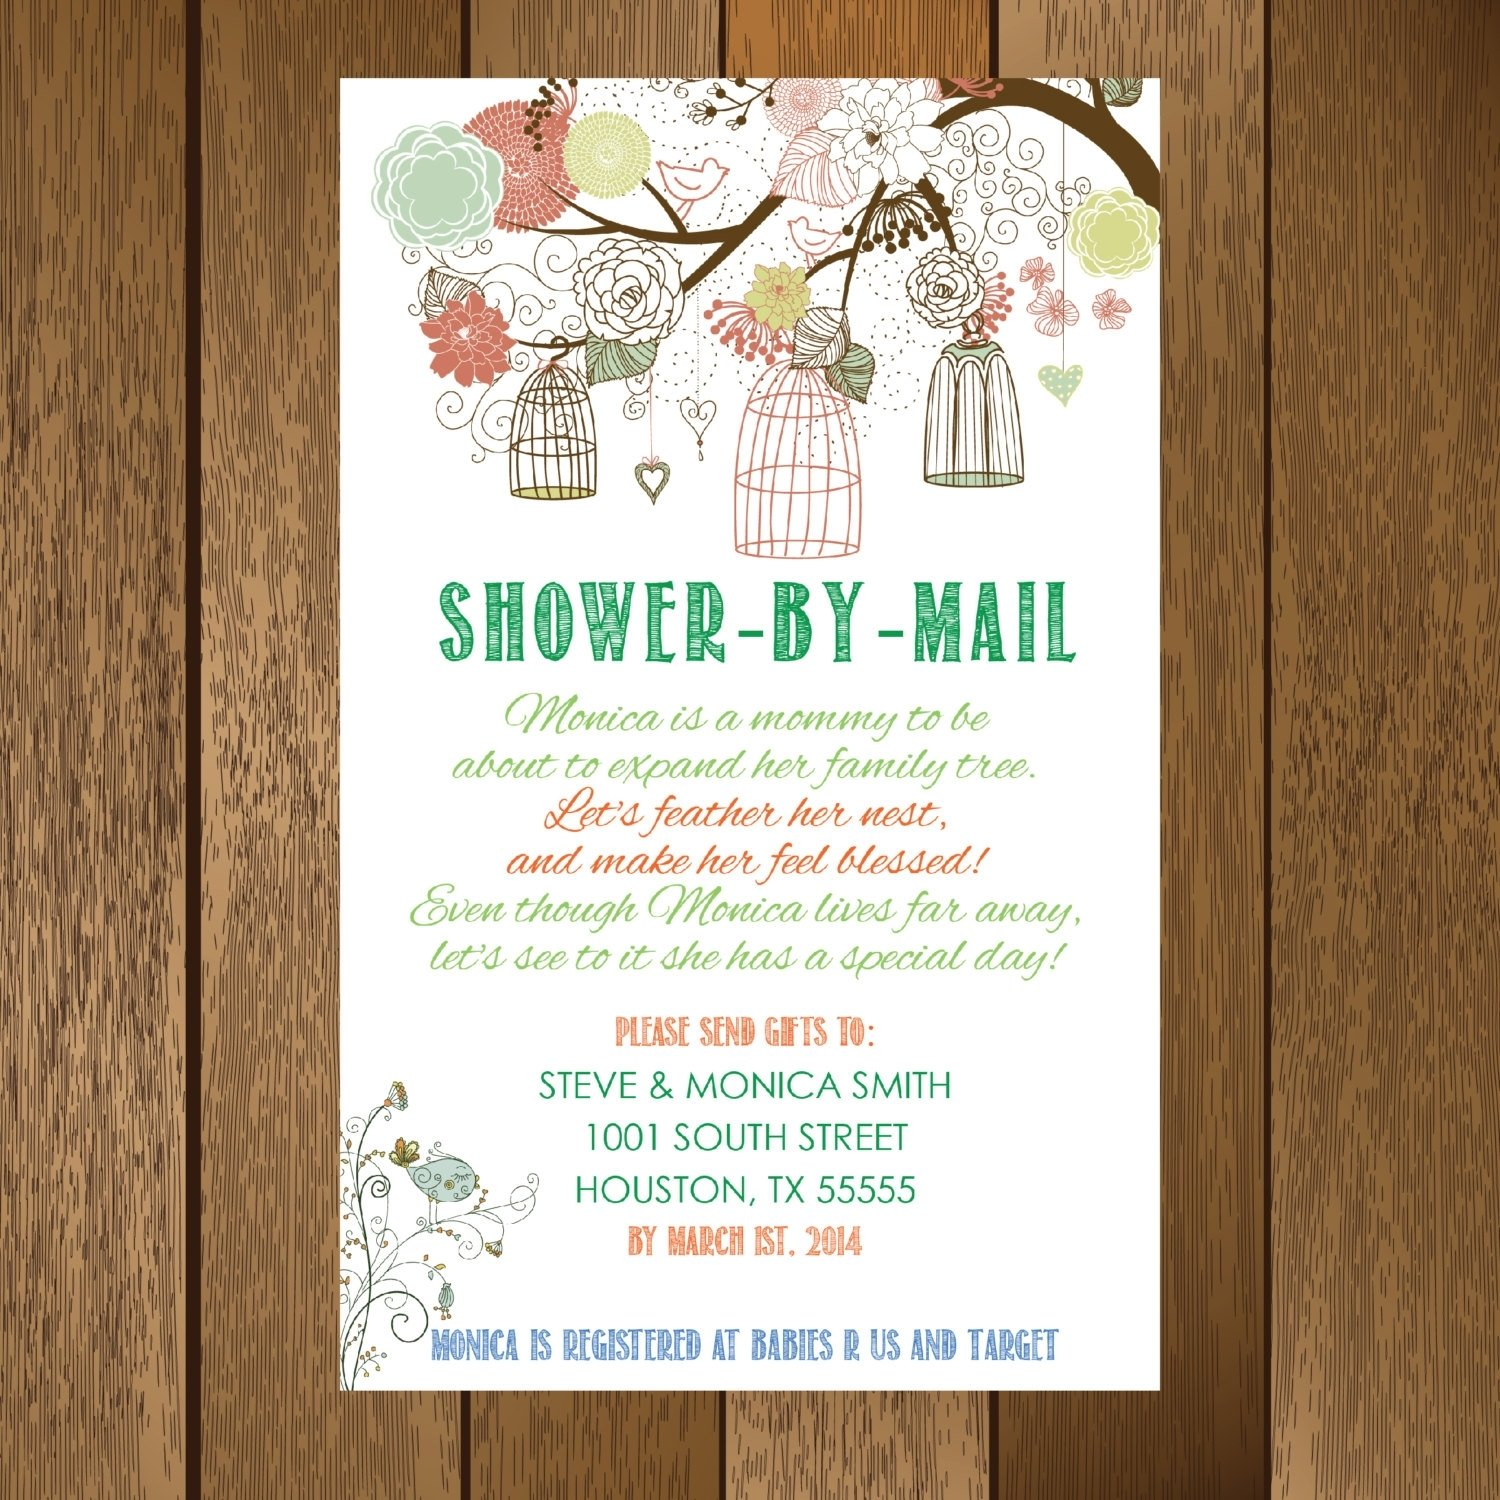 10 Cute Long Distance Baby Shower Ideas rustic showermail baby shower invitation printable rustic 2020